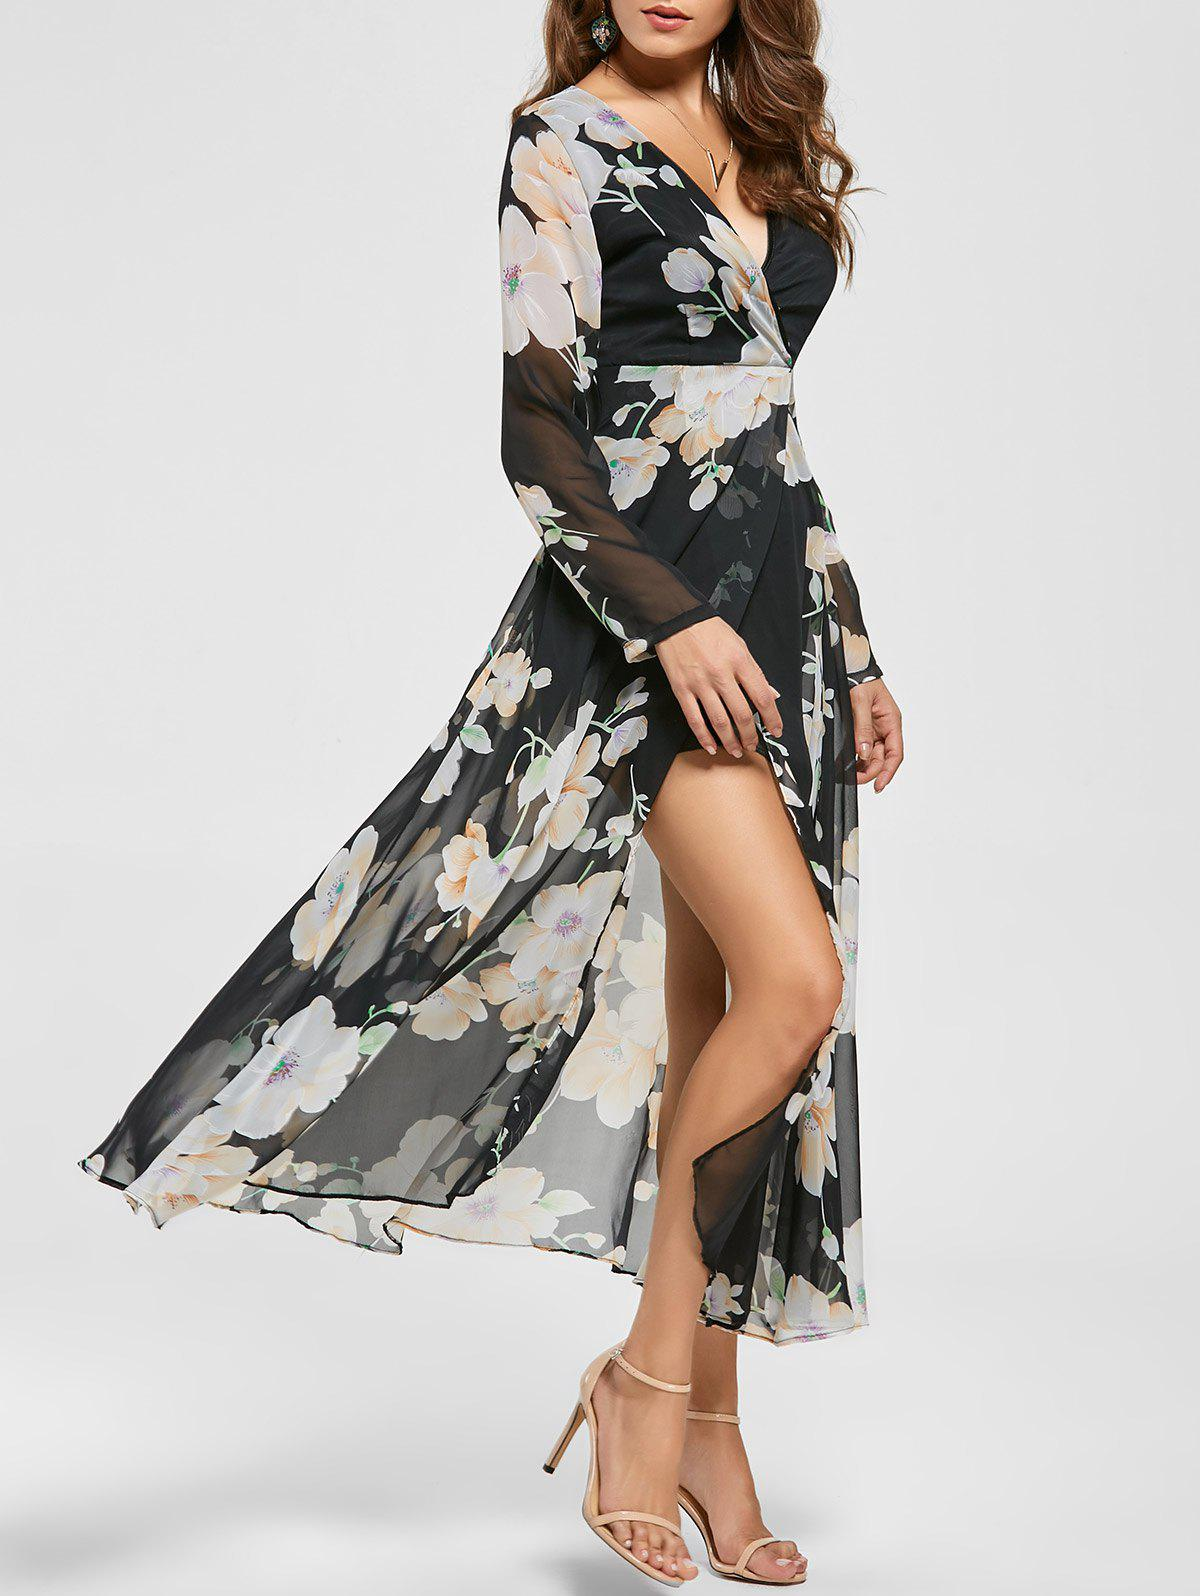 Floral Sheer Slit Long Sleeve Chiffon Flowy Dress - BLACK S